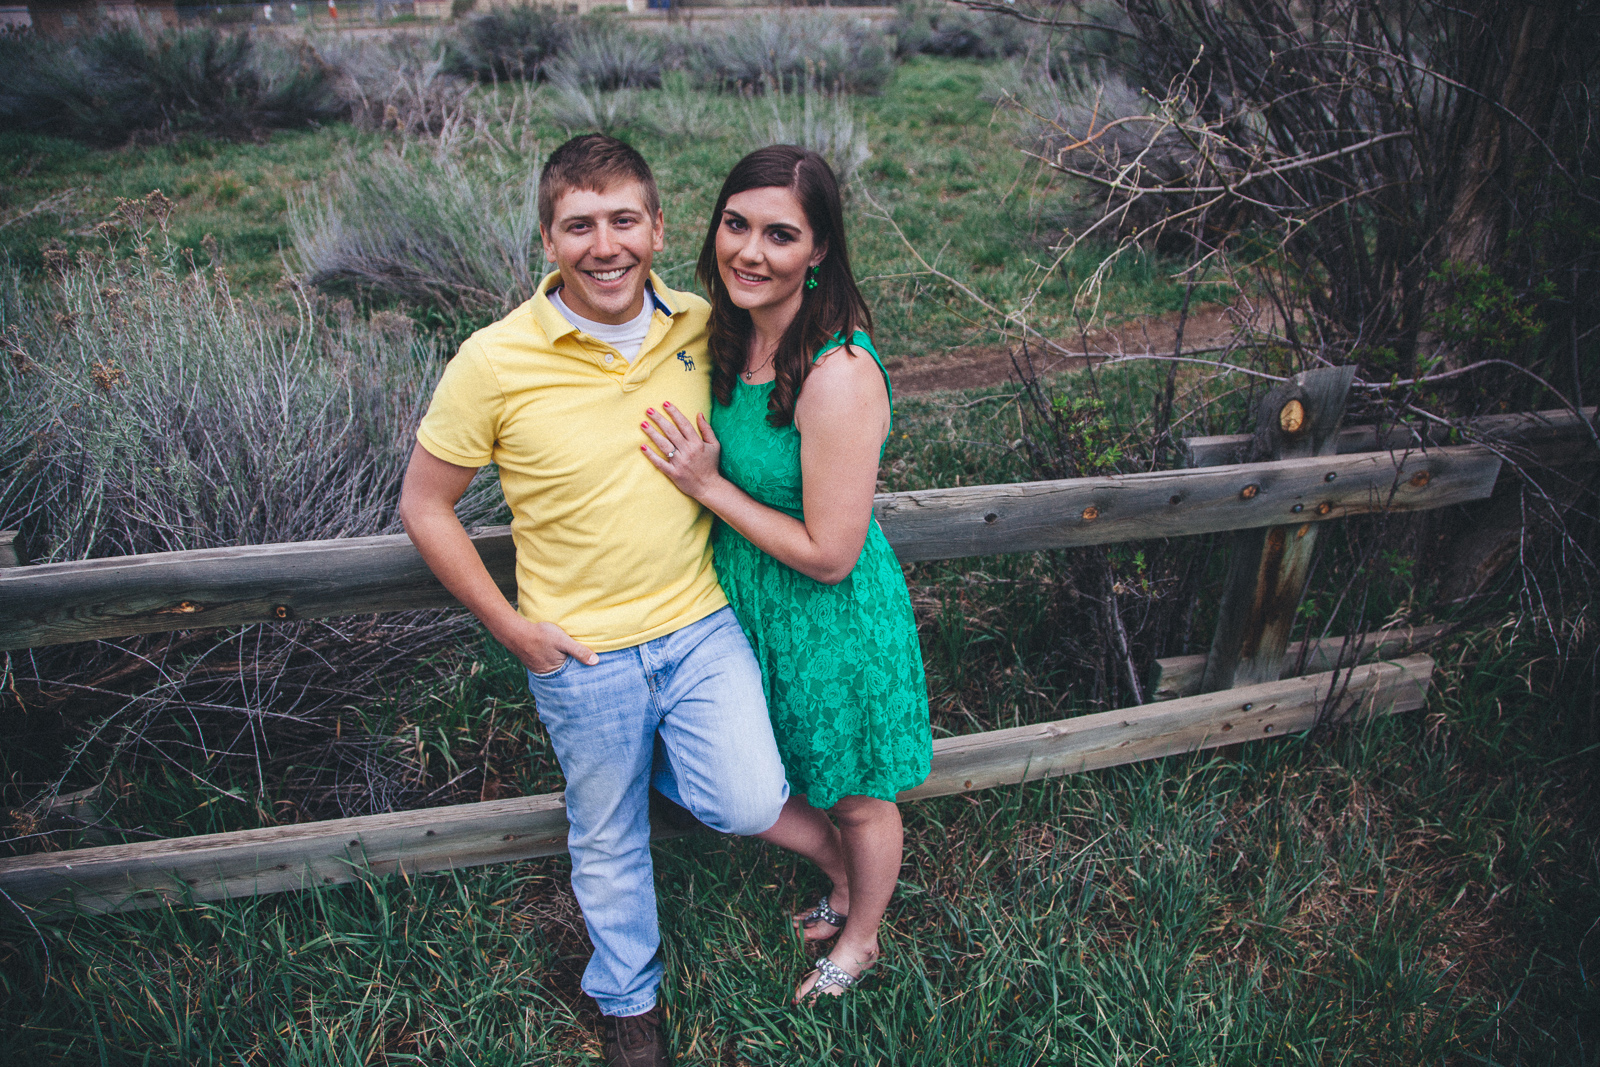 047-engagement-trees-fun-wedding-train-laughing-durango-colorado-farmington-candid